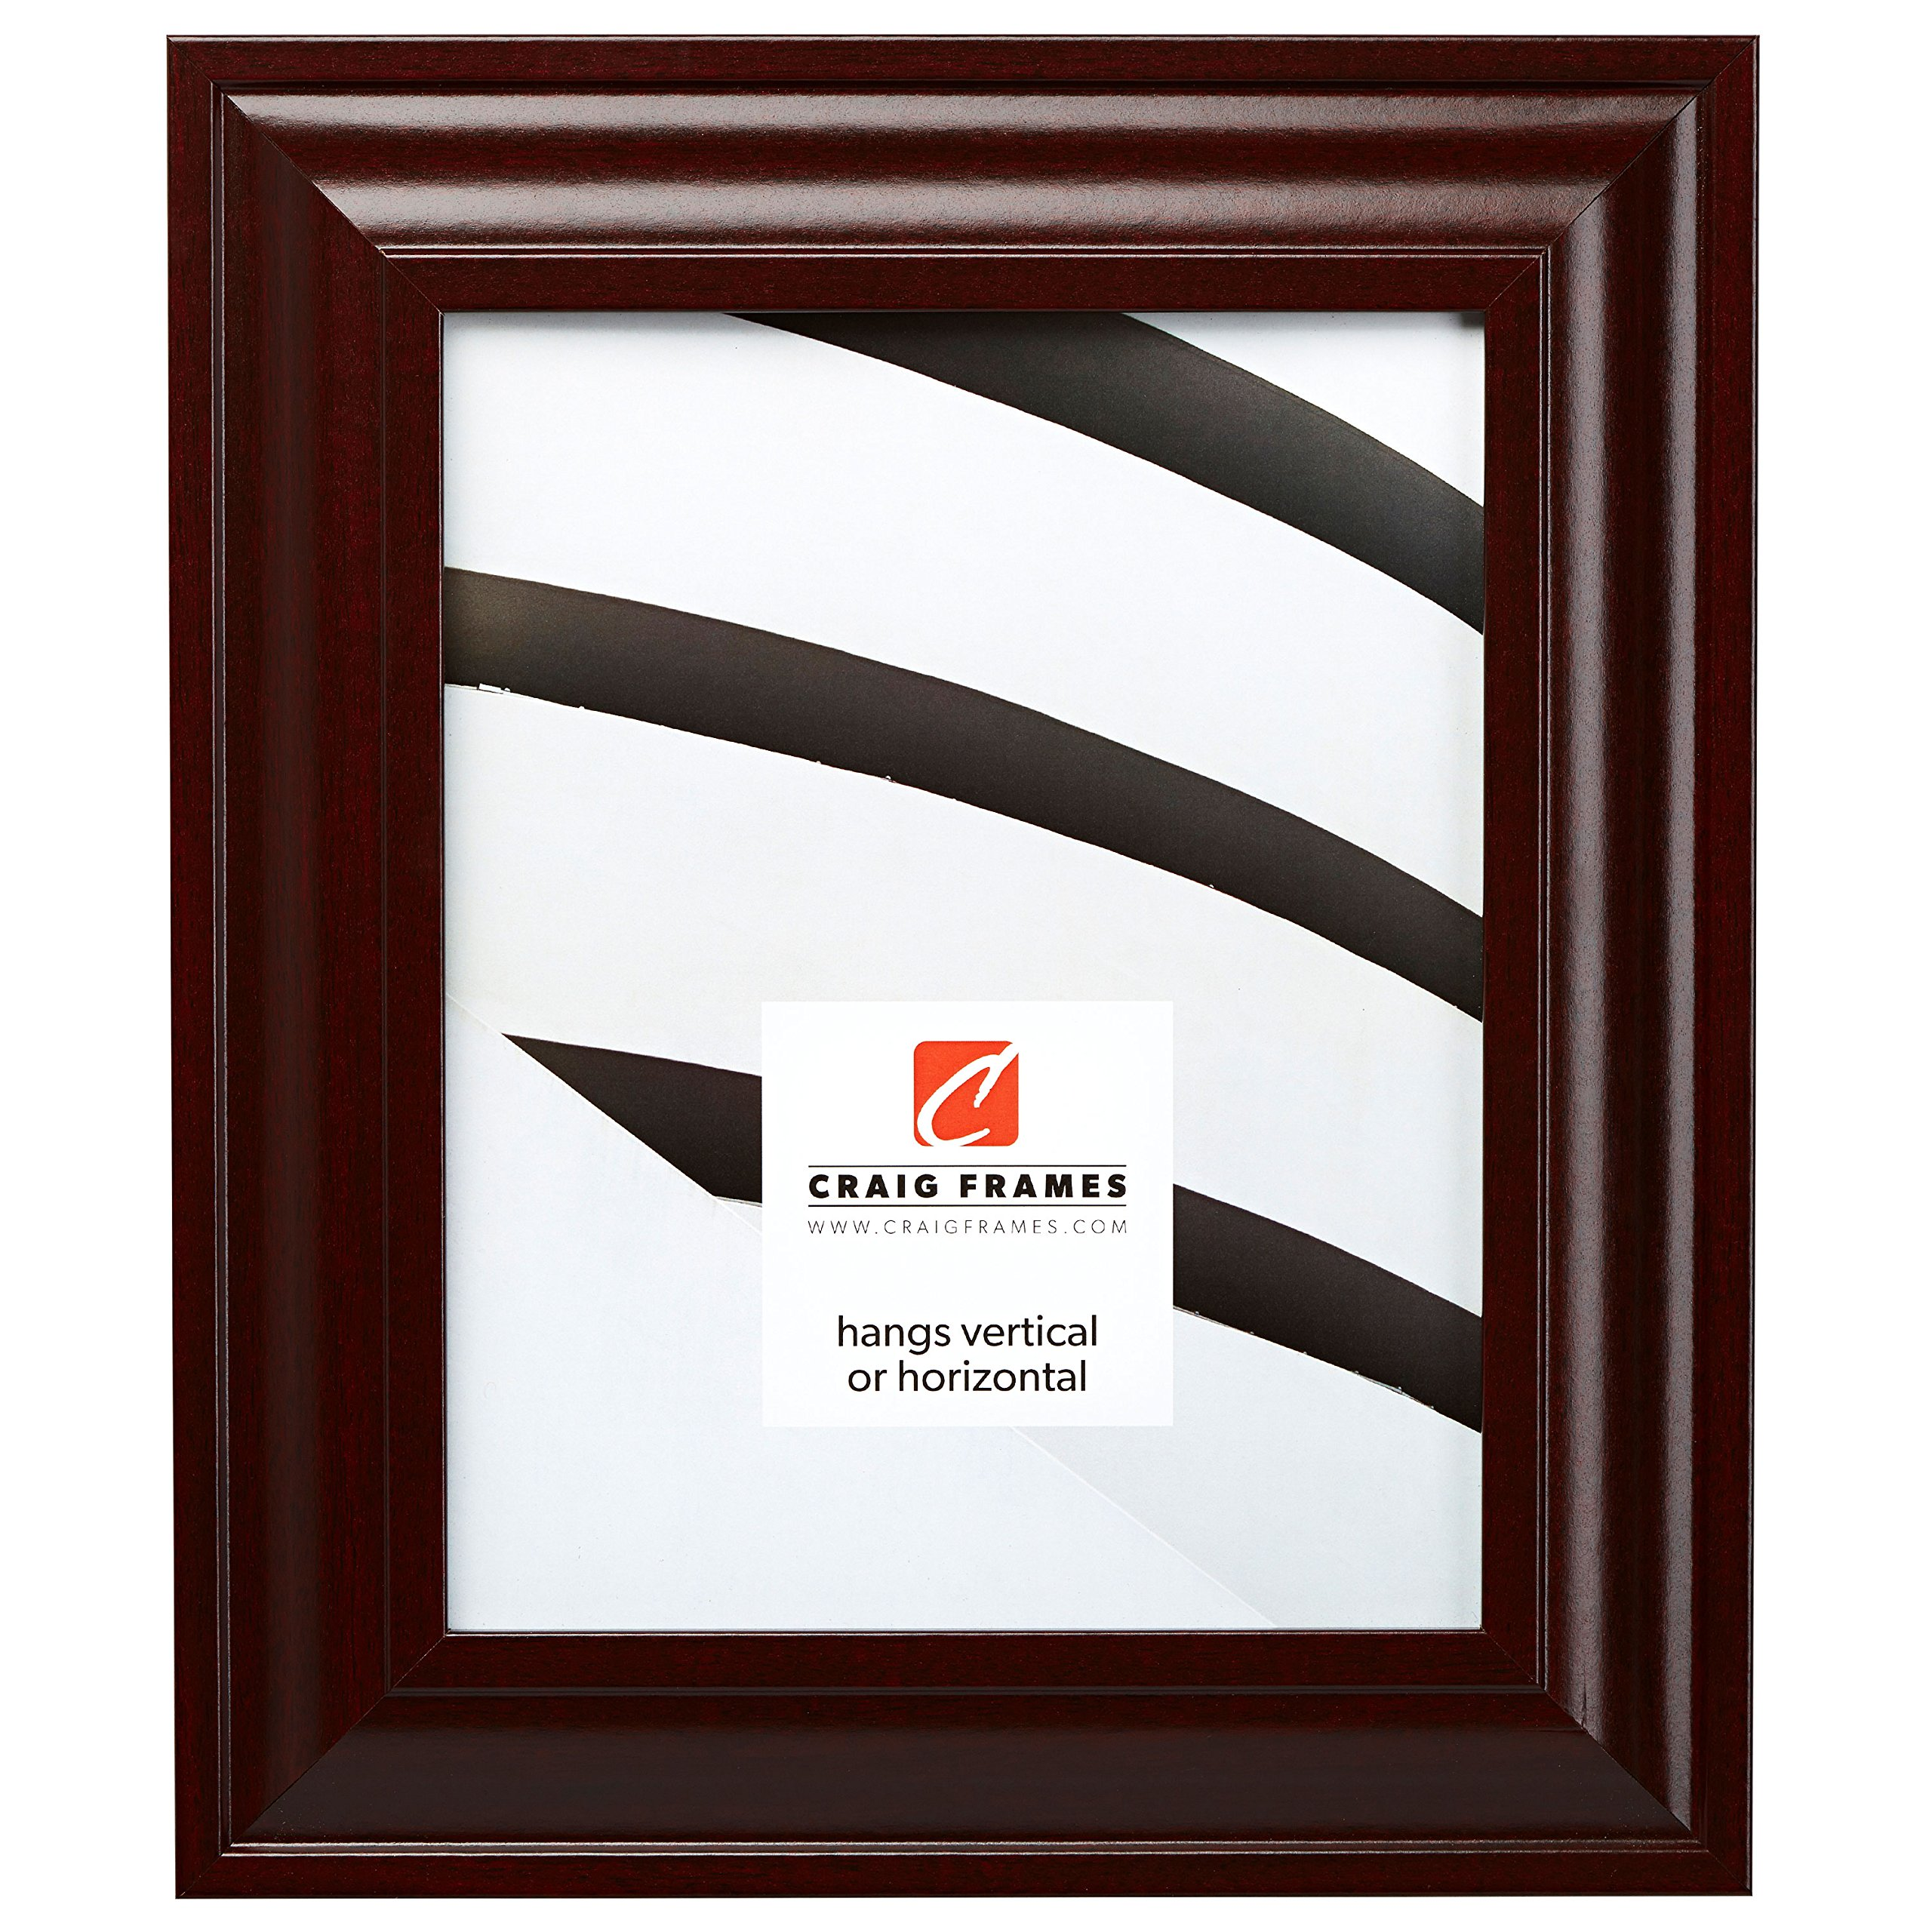 Craig Frames 76047 16 by 20-Inch Picture Frame, Smooth Wood Grain Finish, 2-Inch Wide, Dark Mahogany by Craig Frames